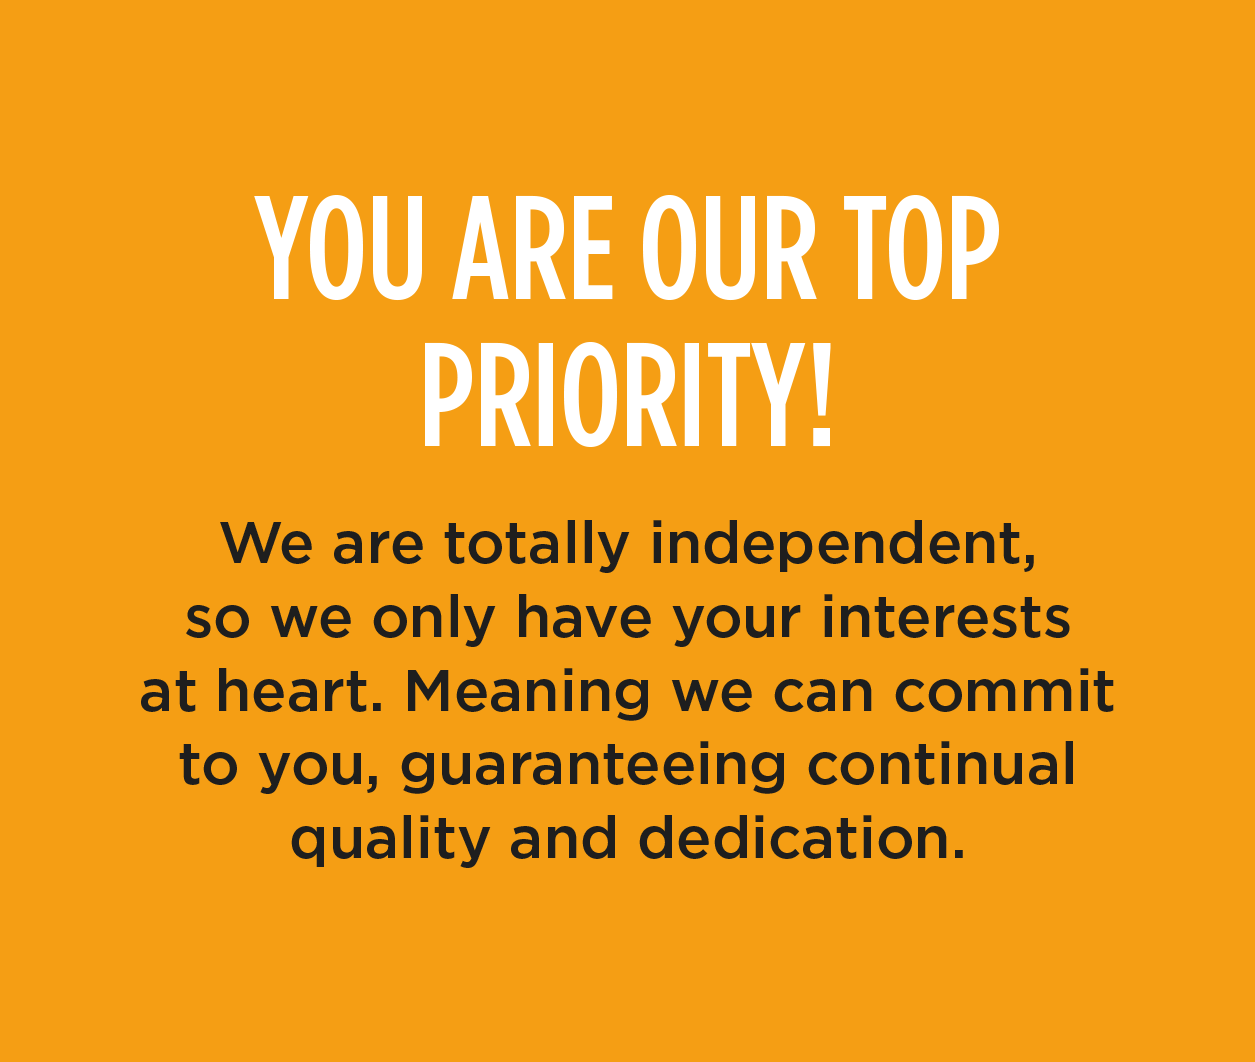 YOU ARE OUR TOP PRIORITY! - We are totally independent, so we only have your interests at heart. Meaning we can commit to you, guaranteeing continual quality and dedication.